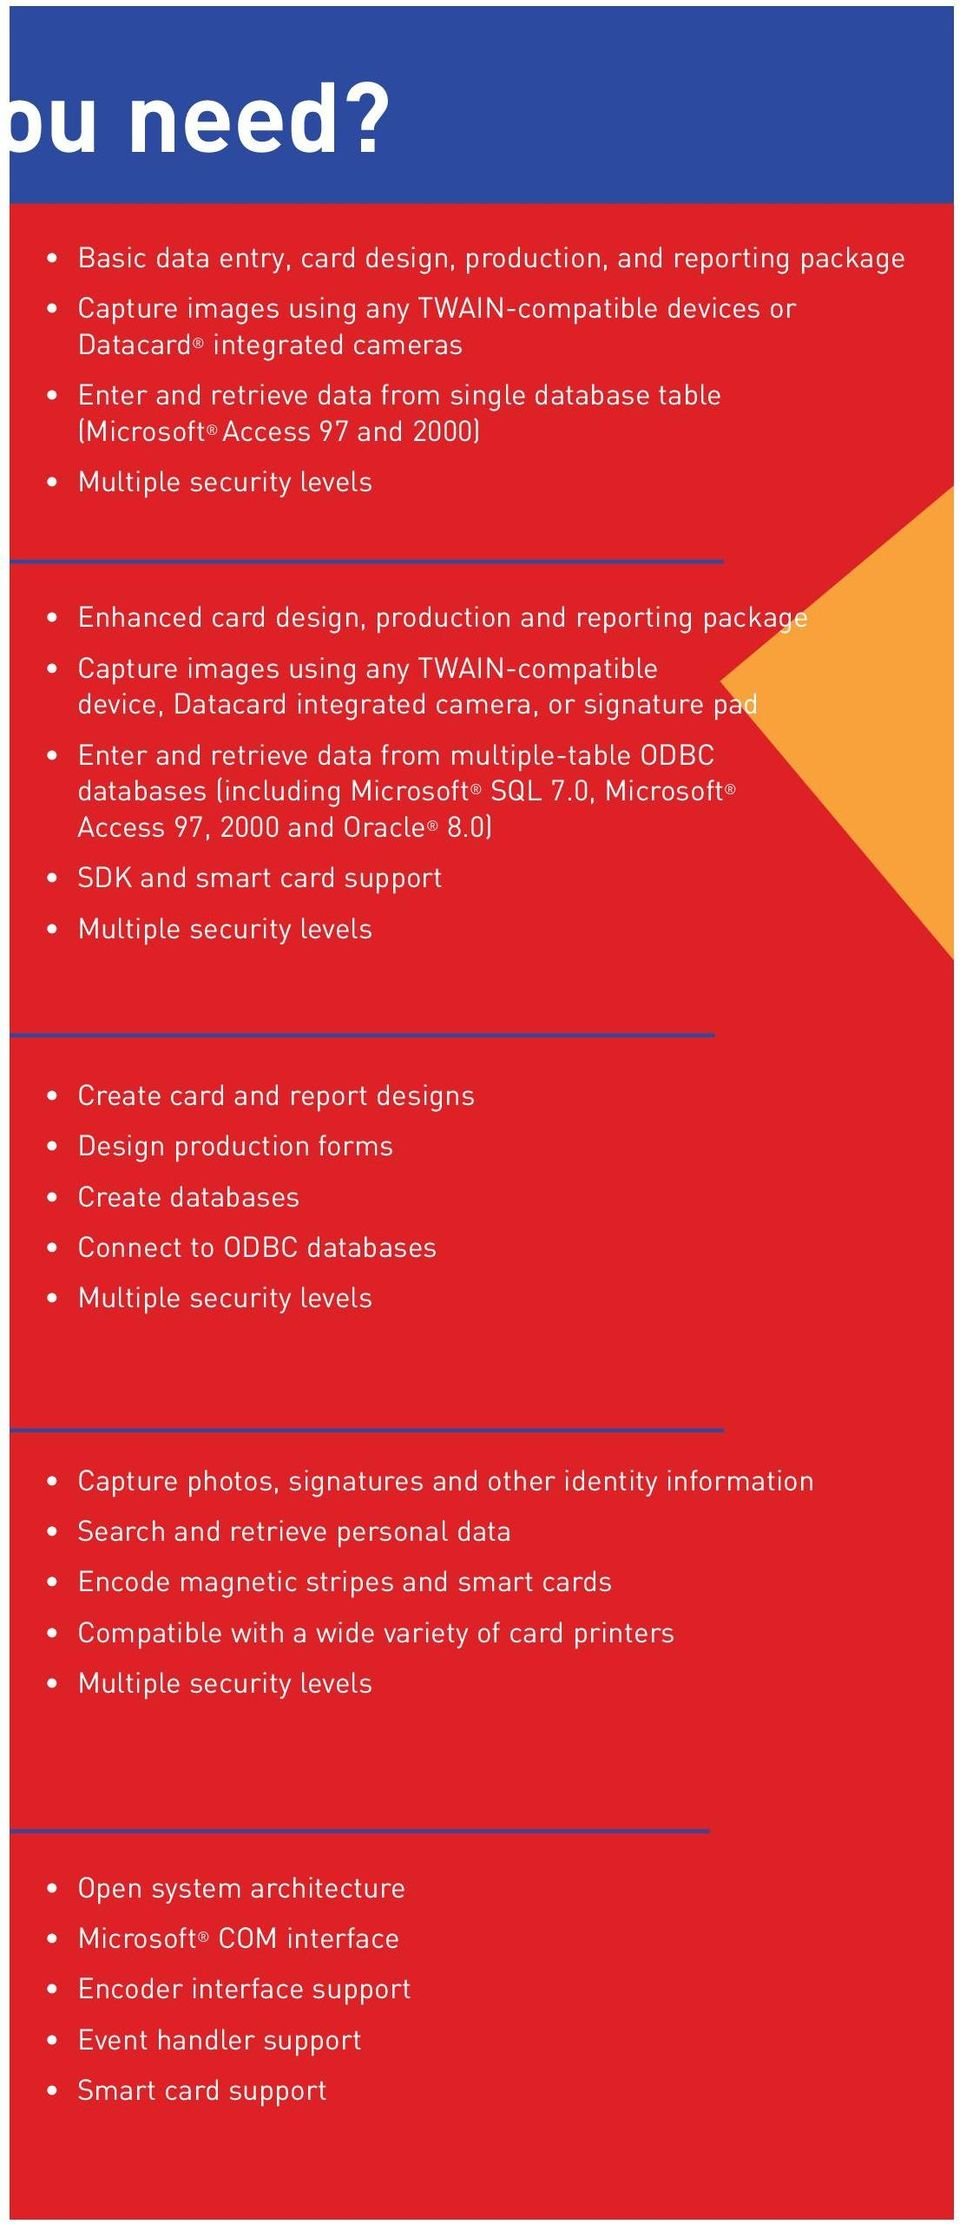 (Microsoft Access 97 and 2000) Enhanced card design, production and reporting package Capture images using any TWAIN-compatible device, Datacard integrated camera, or signature pad Enter and retrieve